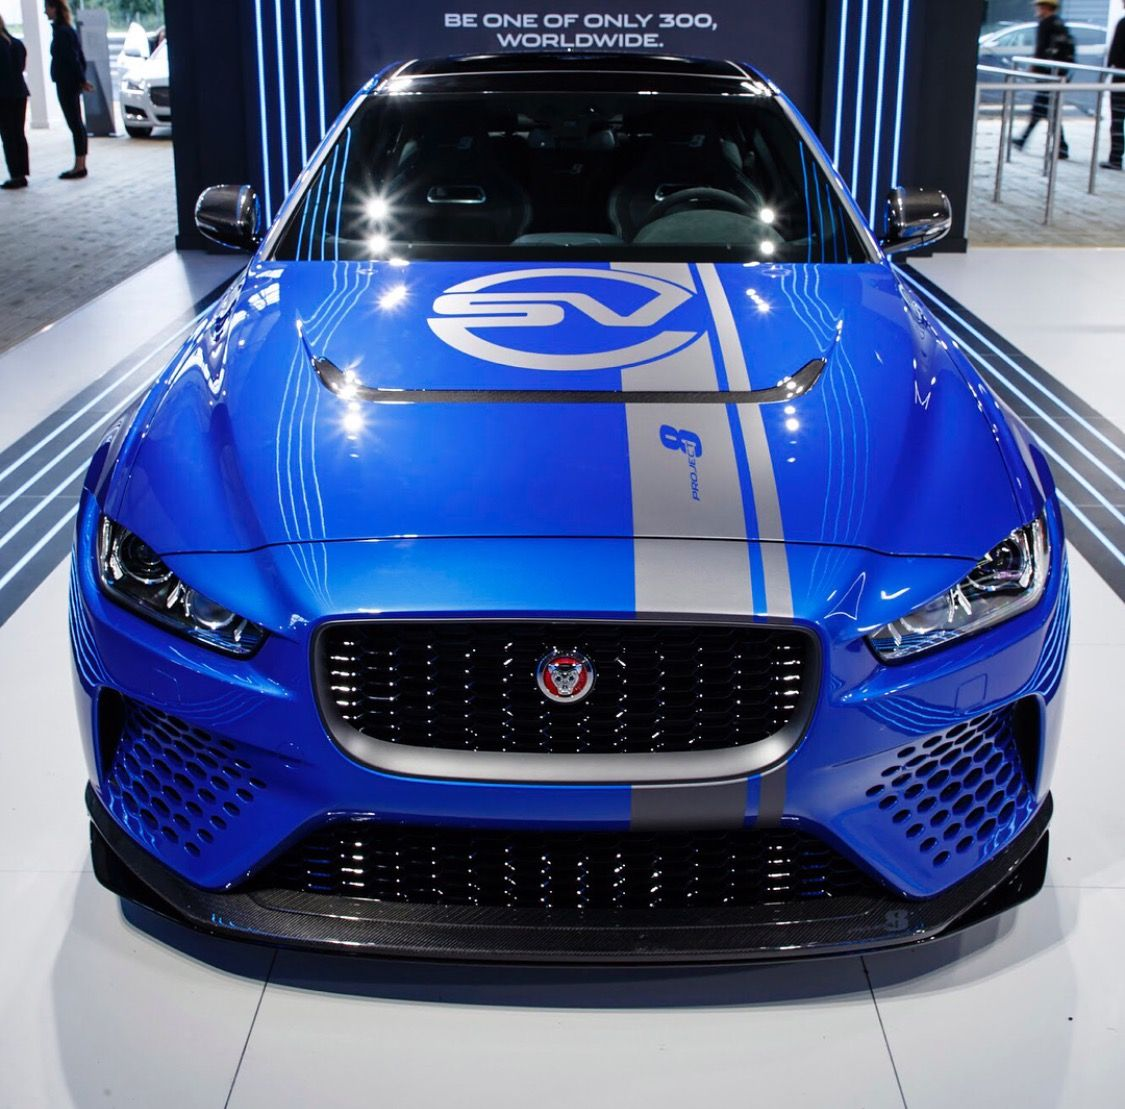 jaguar xe svr project 8 0 to 60 mph 600 hp cars pinterest cars sports cars and. Black Bedroom Furniture Sets. Home Design Ideas